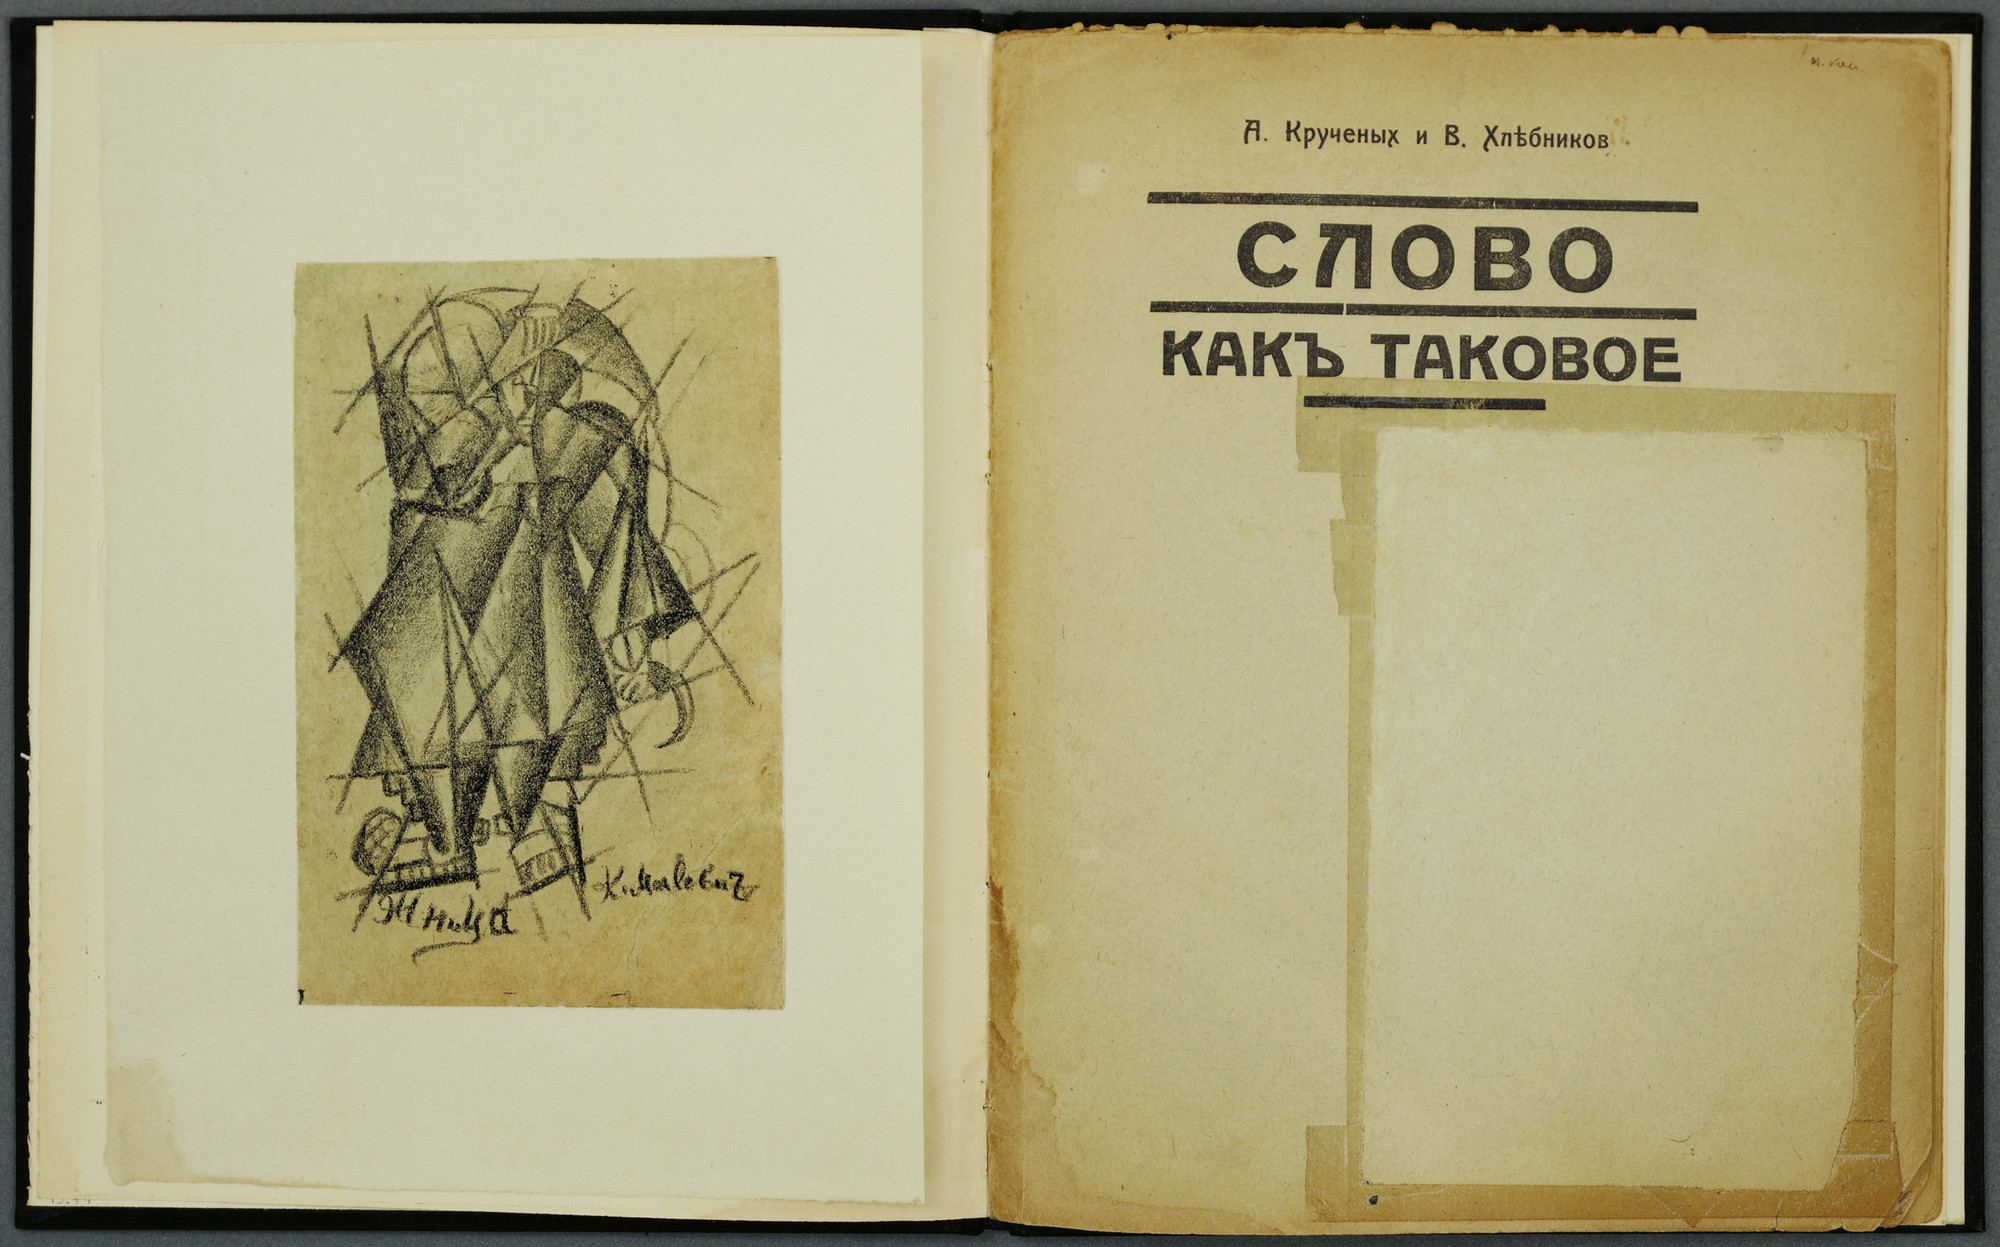 Kazimir Malevich. Woman Reaper (front cover) from Slovo Kak Takavoe (The Word as Such). 1913